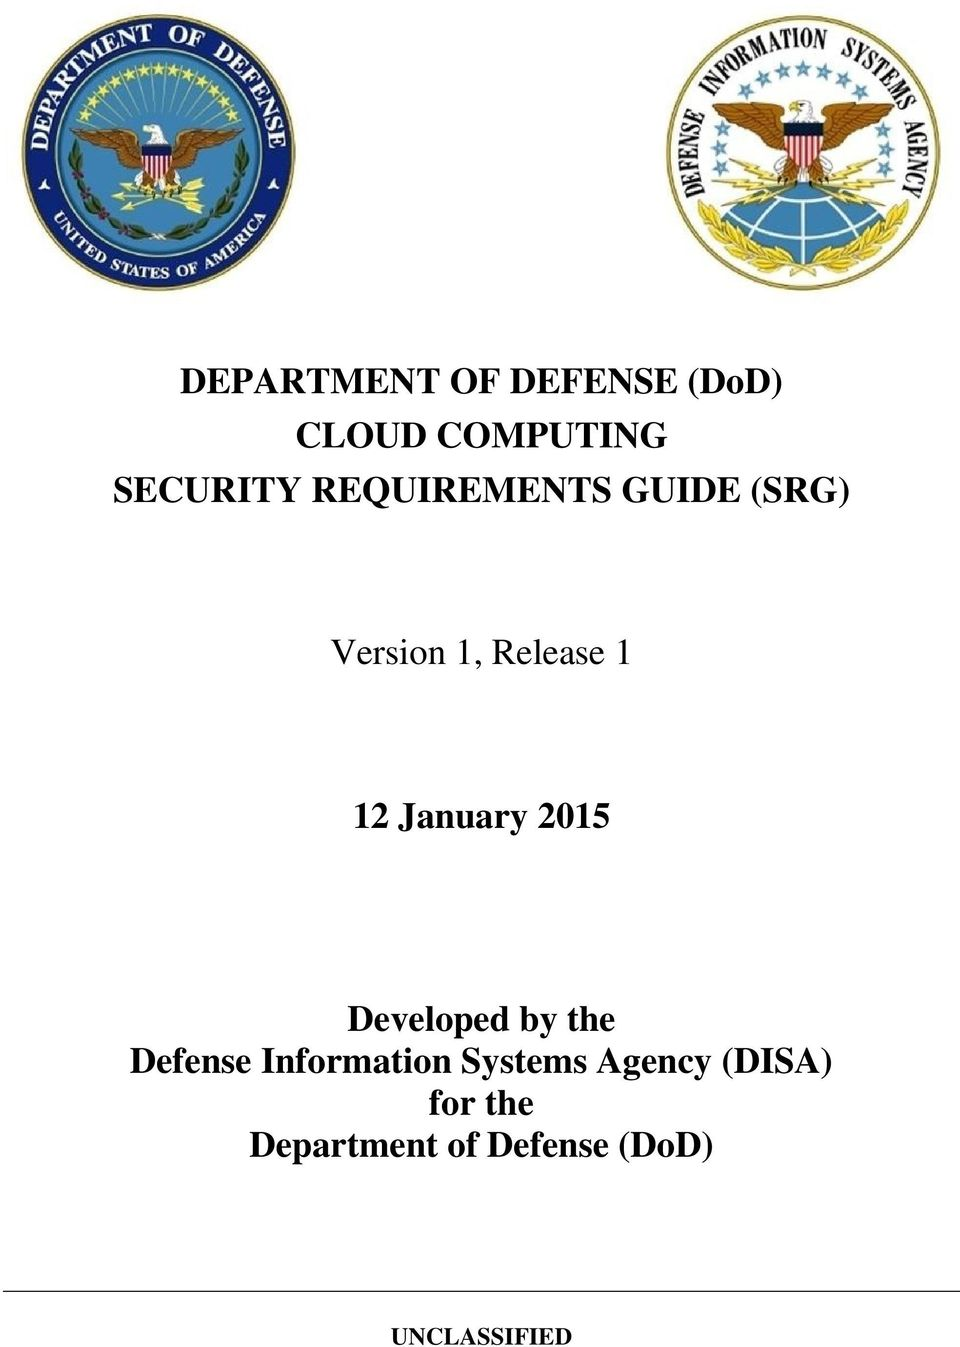 January 2015 Developed by the Defense Information